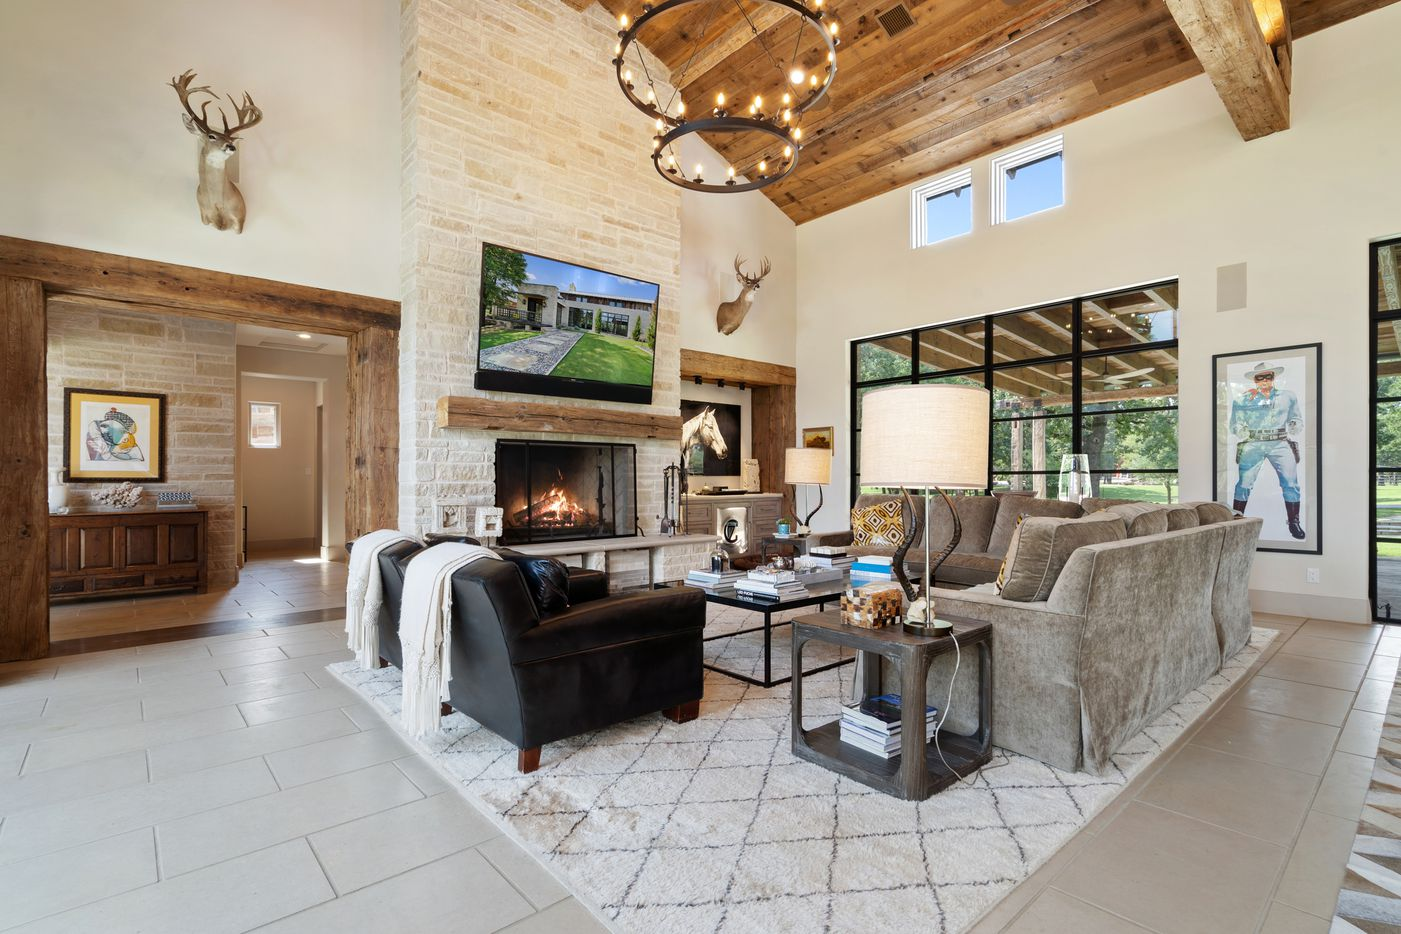 Take a look at C7 Ranch at 3161 County Road 808 in Cleburne.